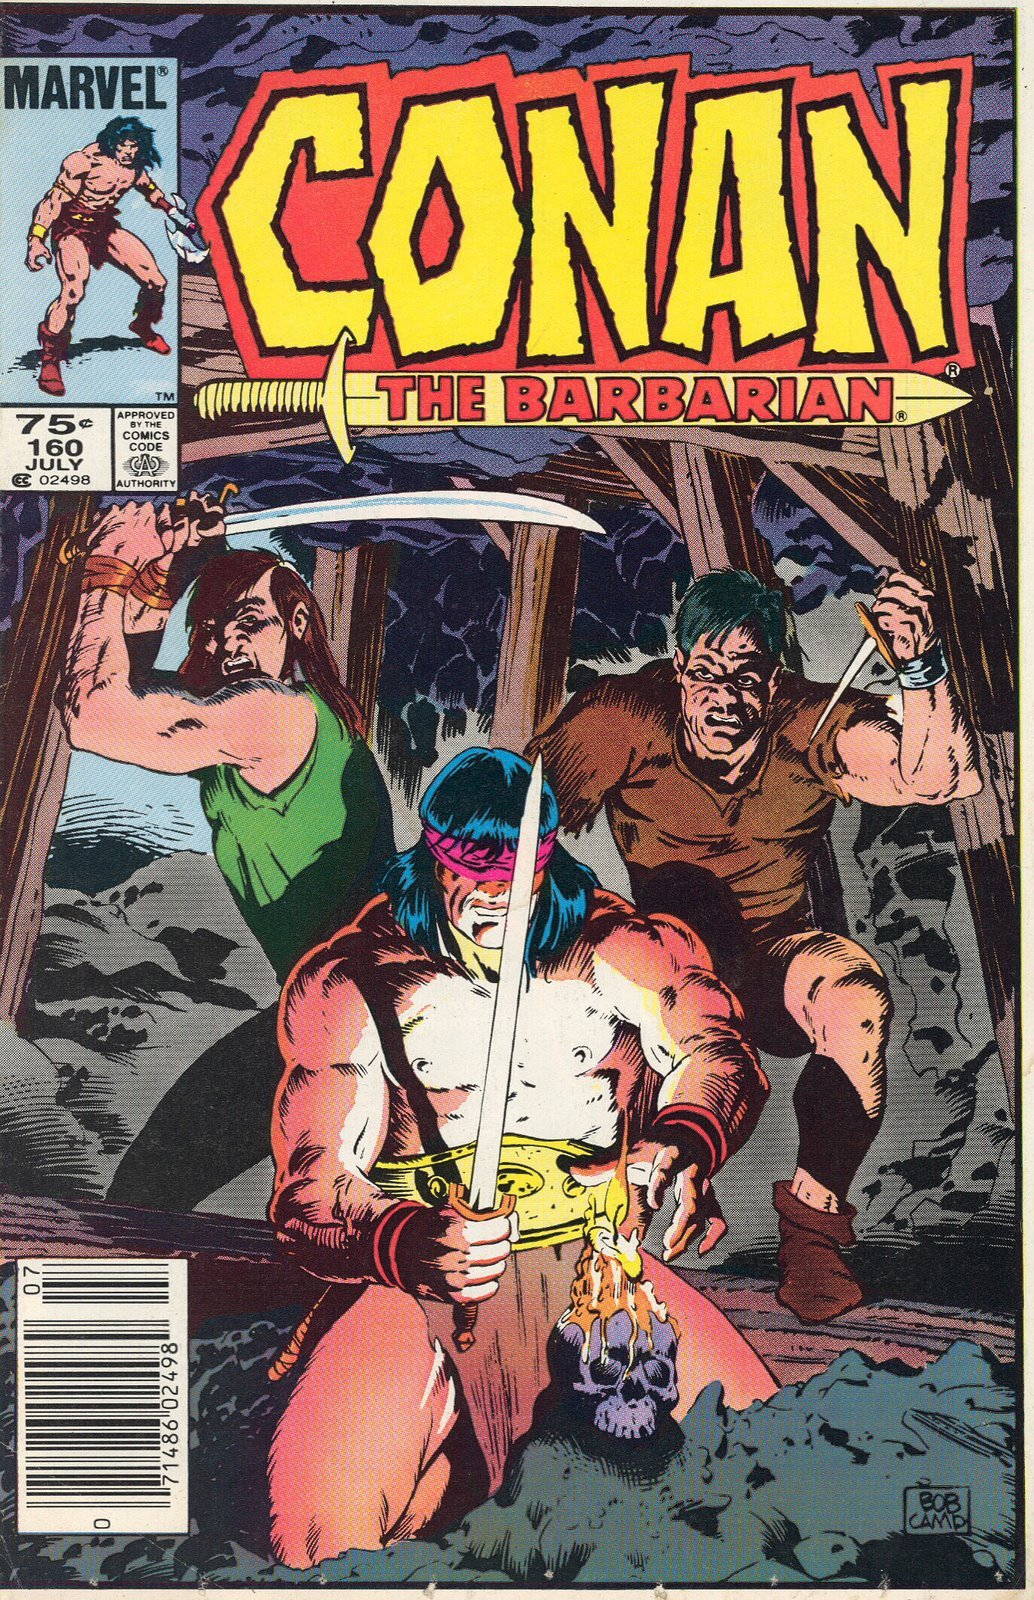 [Conan+the+Barbarian+160]